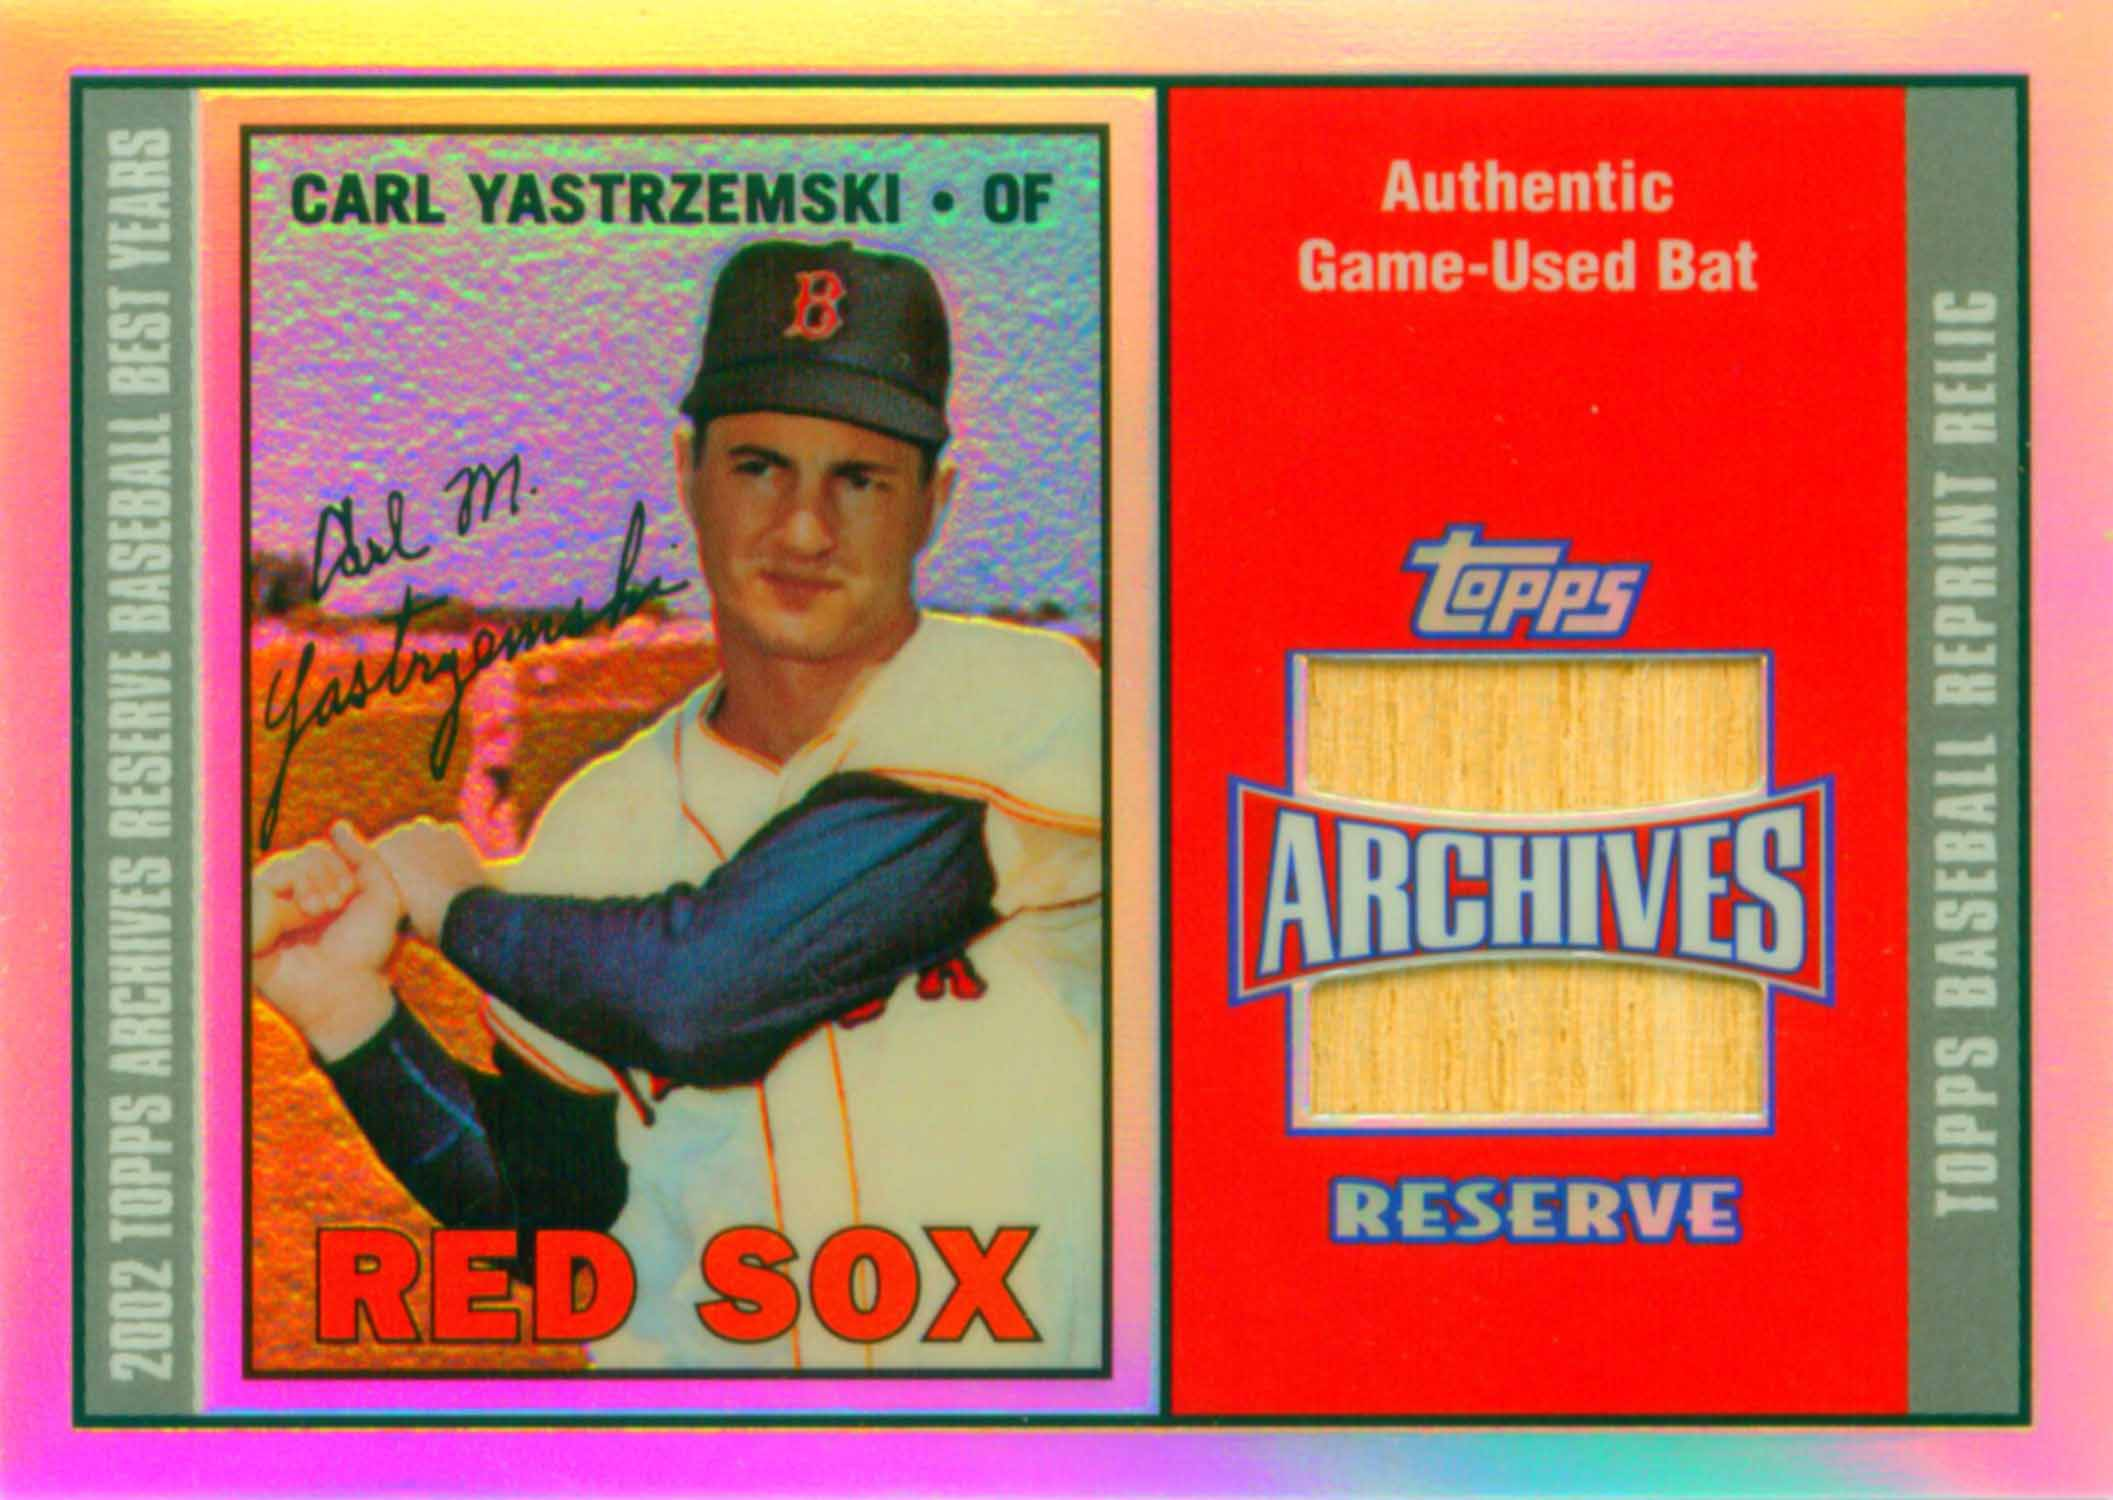 2002 Topps Archives Reserve Bat Relics